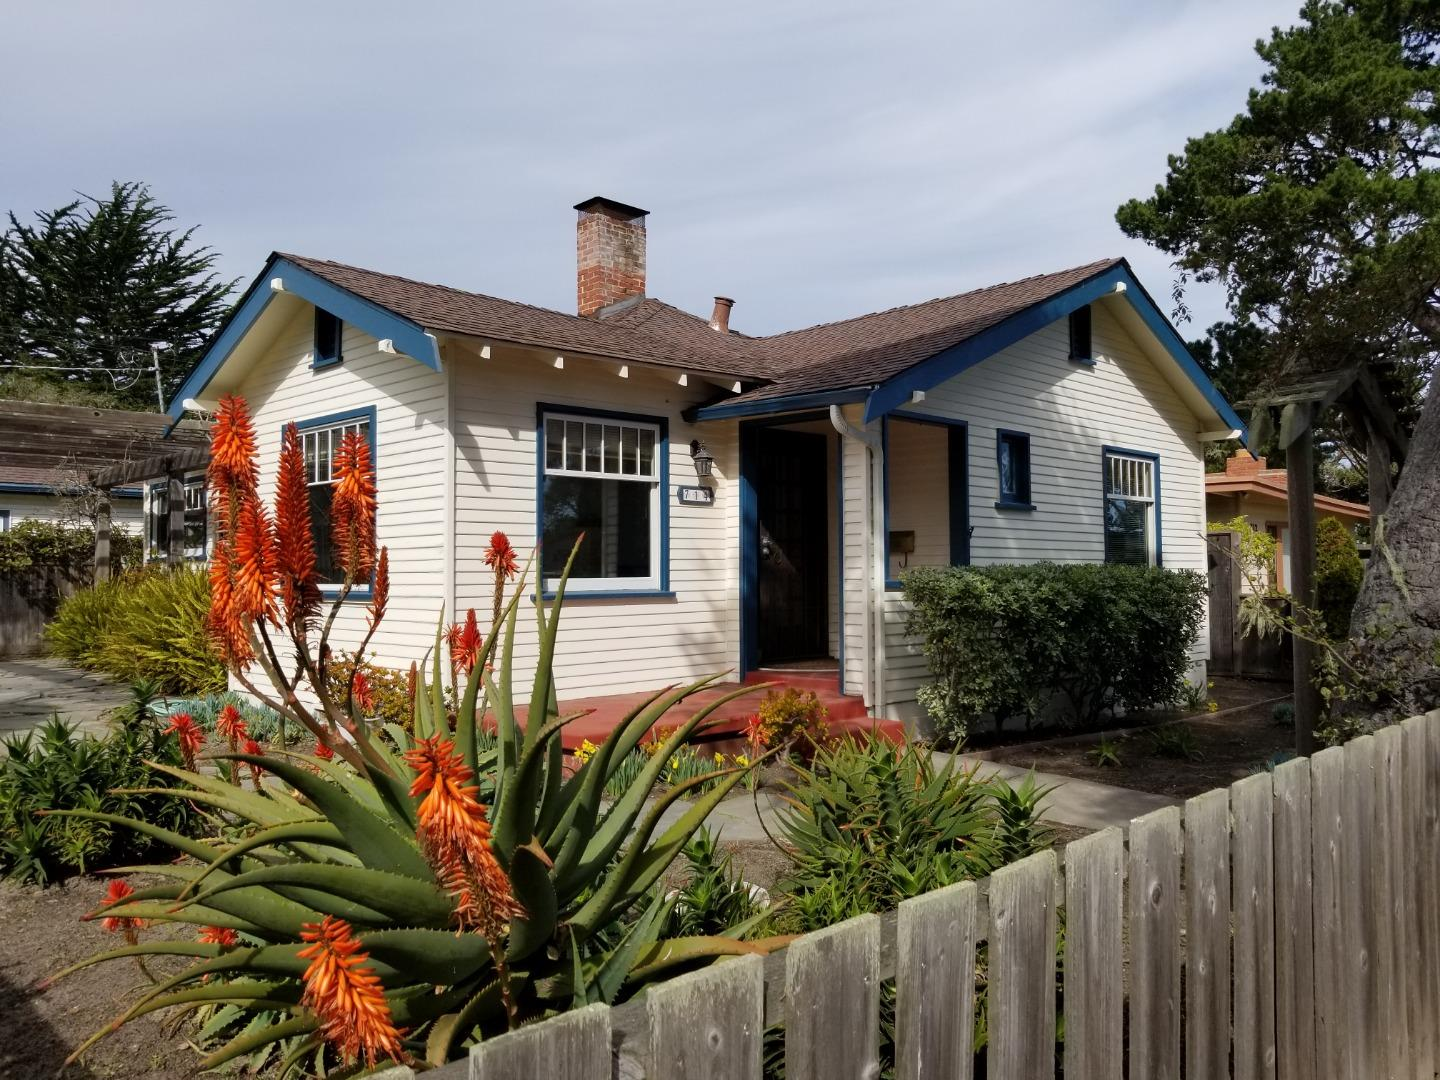 Property for sale at 714 19th & 670 Sinex, Pacific Grove,  California 93950